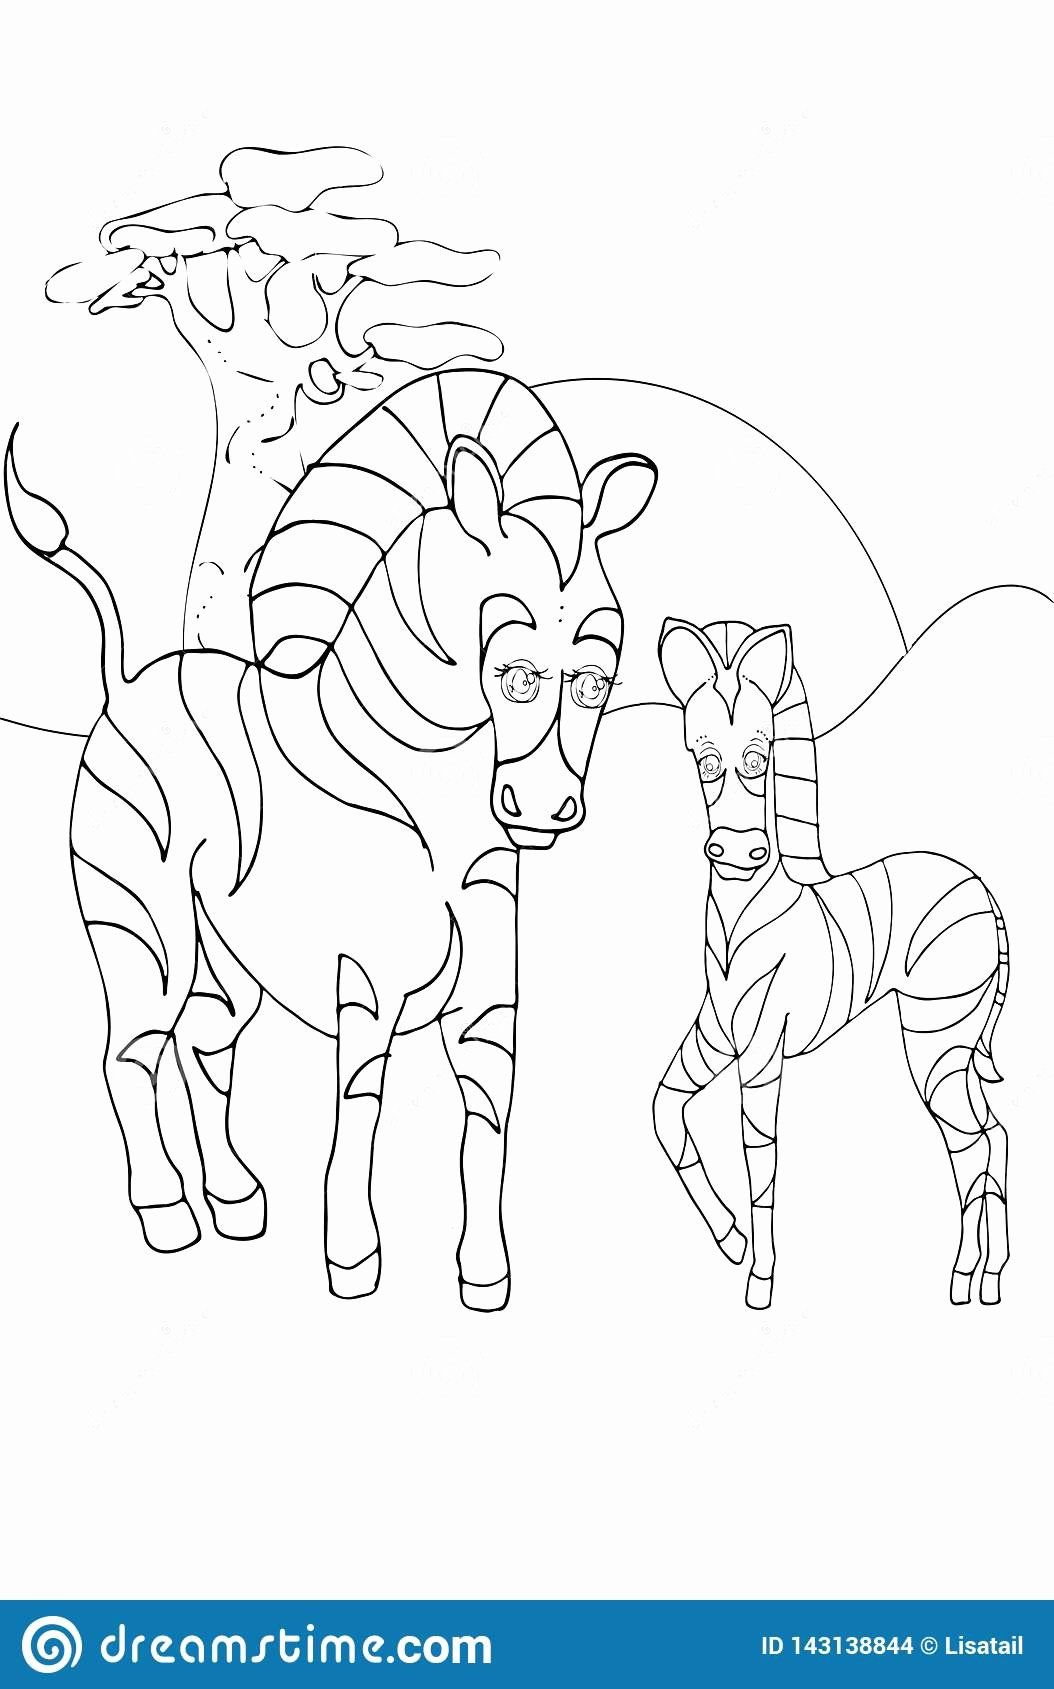 Coloring Pages For Kids Animals Awesome Coloring Children Animals And Children Animals Zebra Stock In 2020 Zebra Coloring Pages Baby Zebra Animal Coloring Pages [ 1689 x 1054 Pixel ]